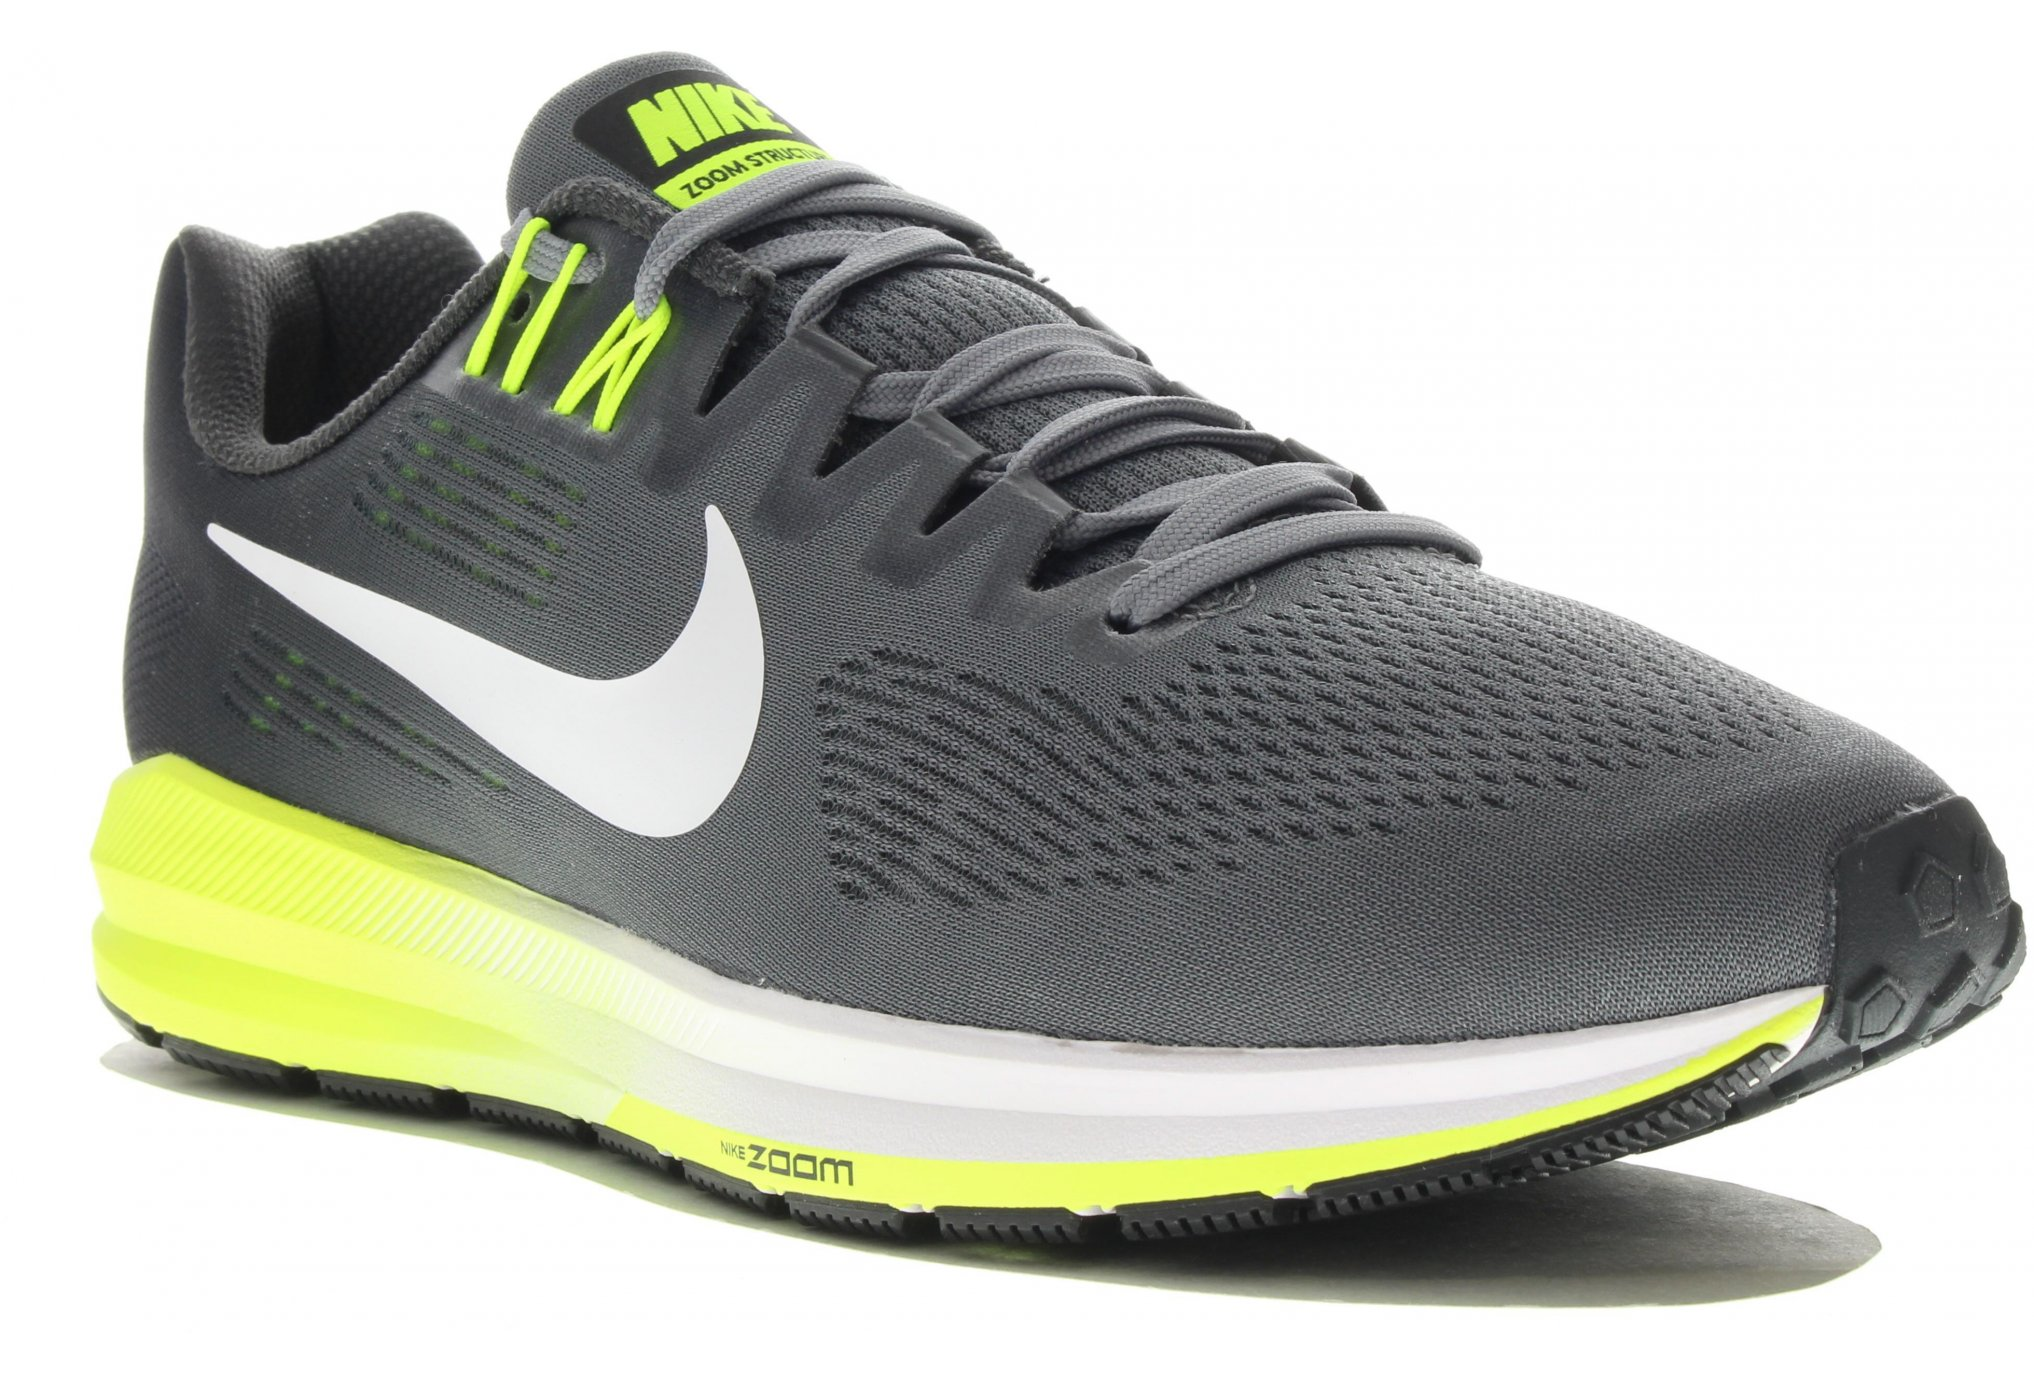 Nike Air Zoom Structure 21 Ancha déstockage running